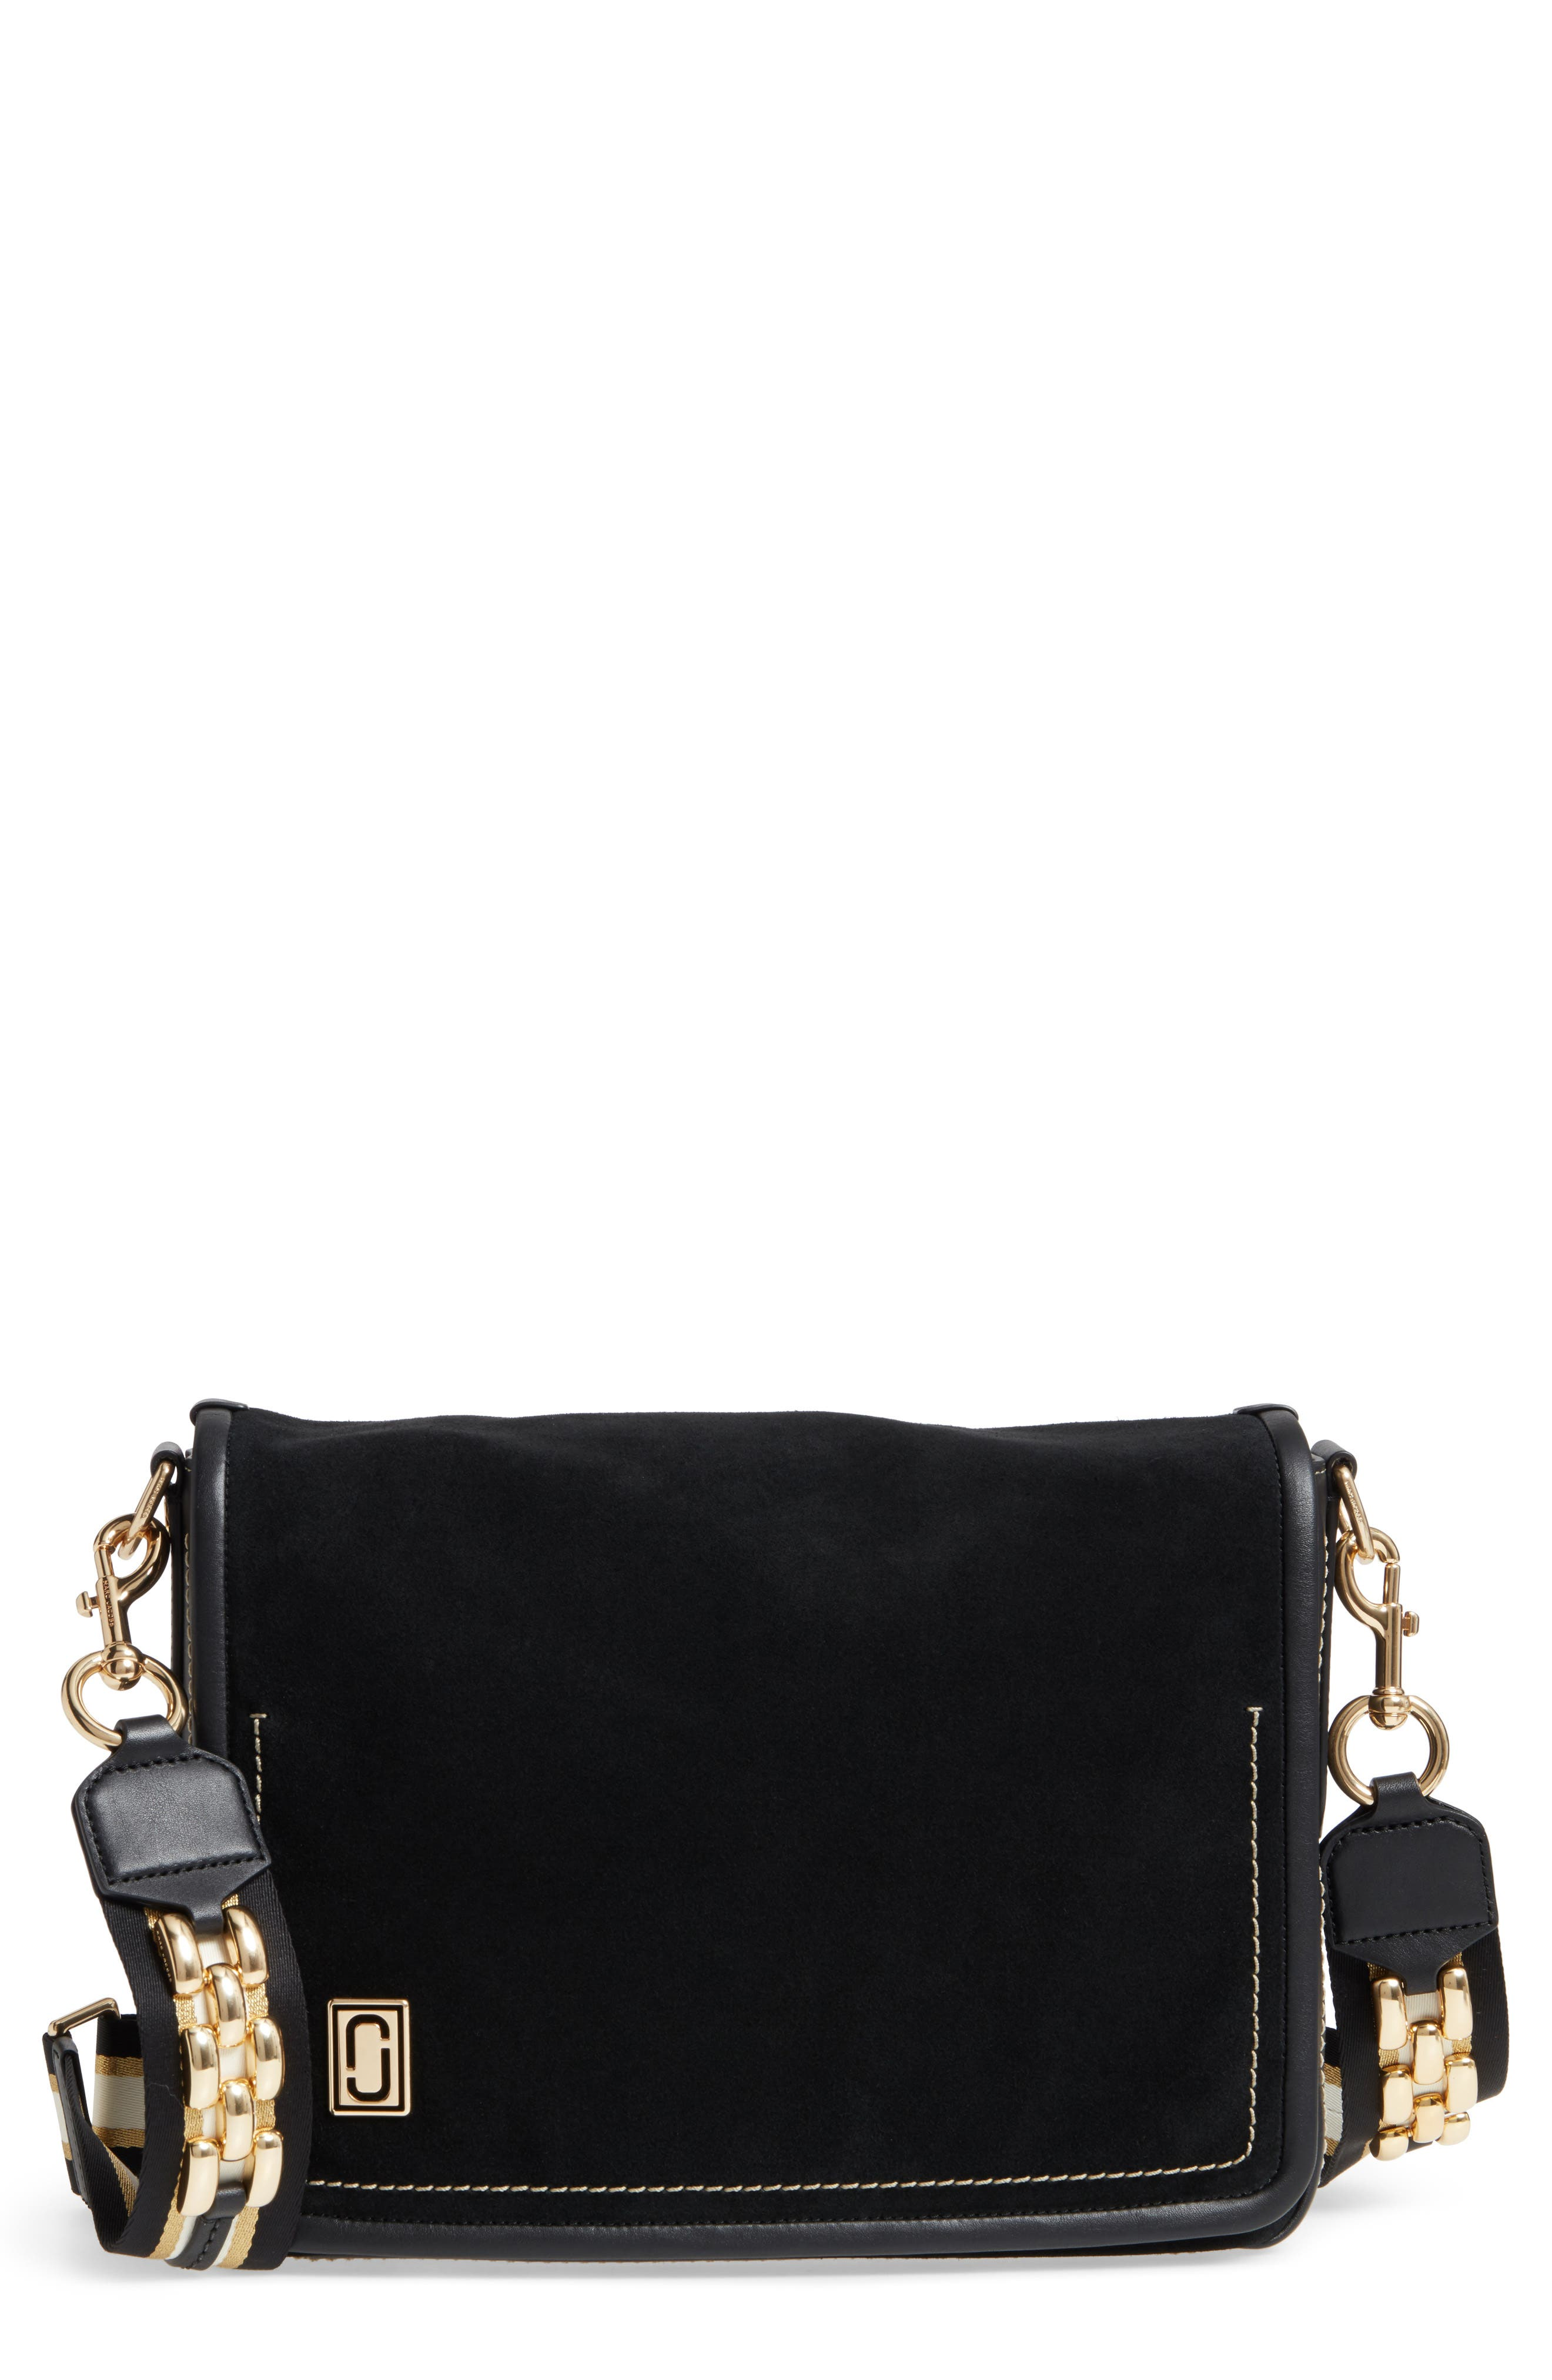 MARC JACOBS The Squeeze Suede Shoulder Bag